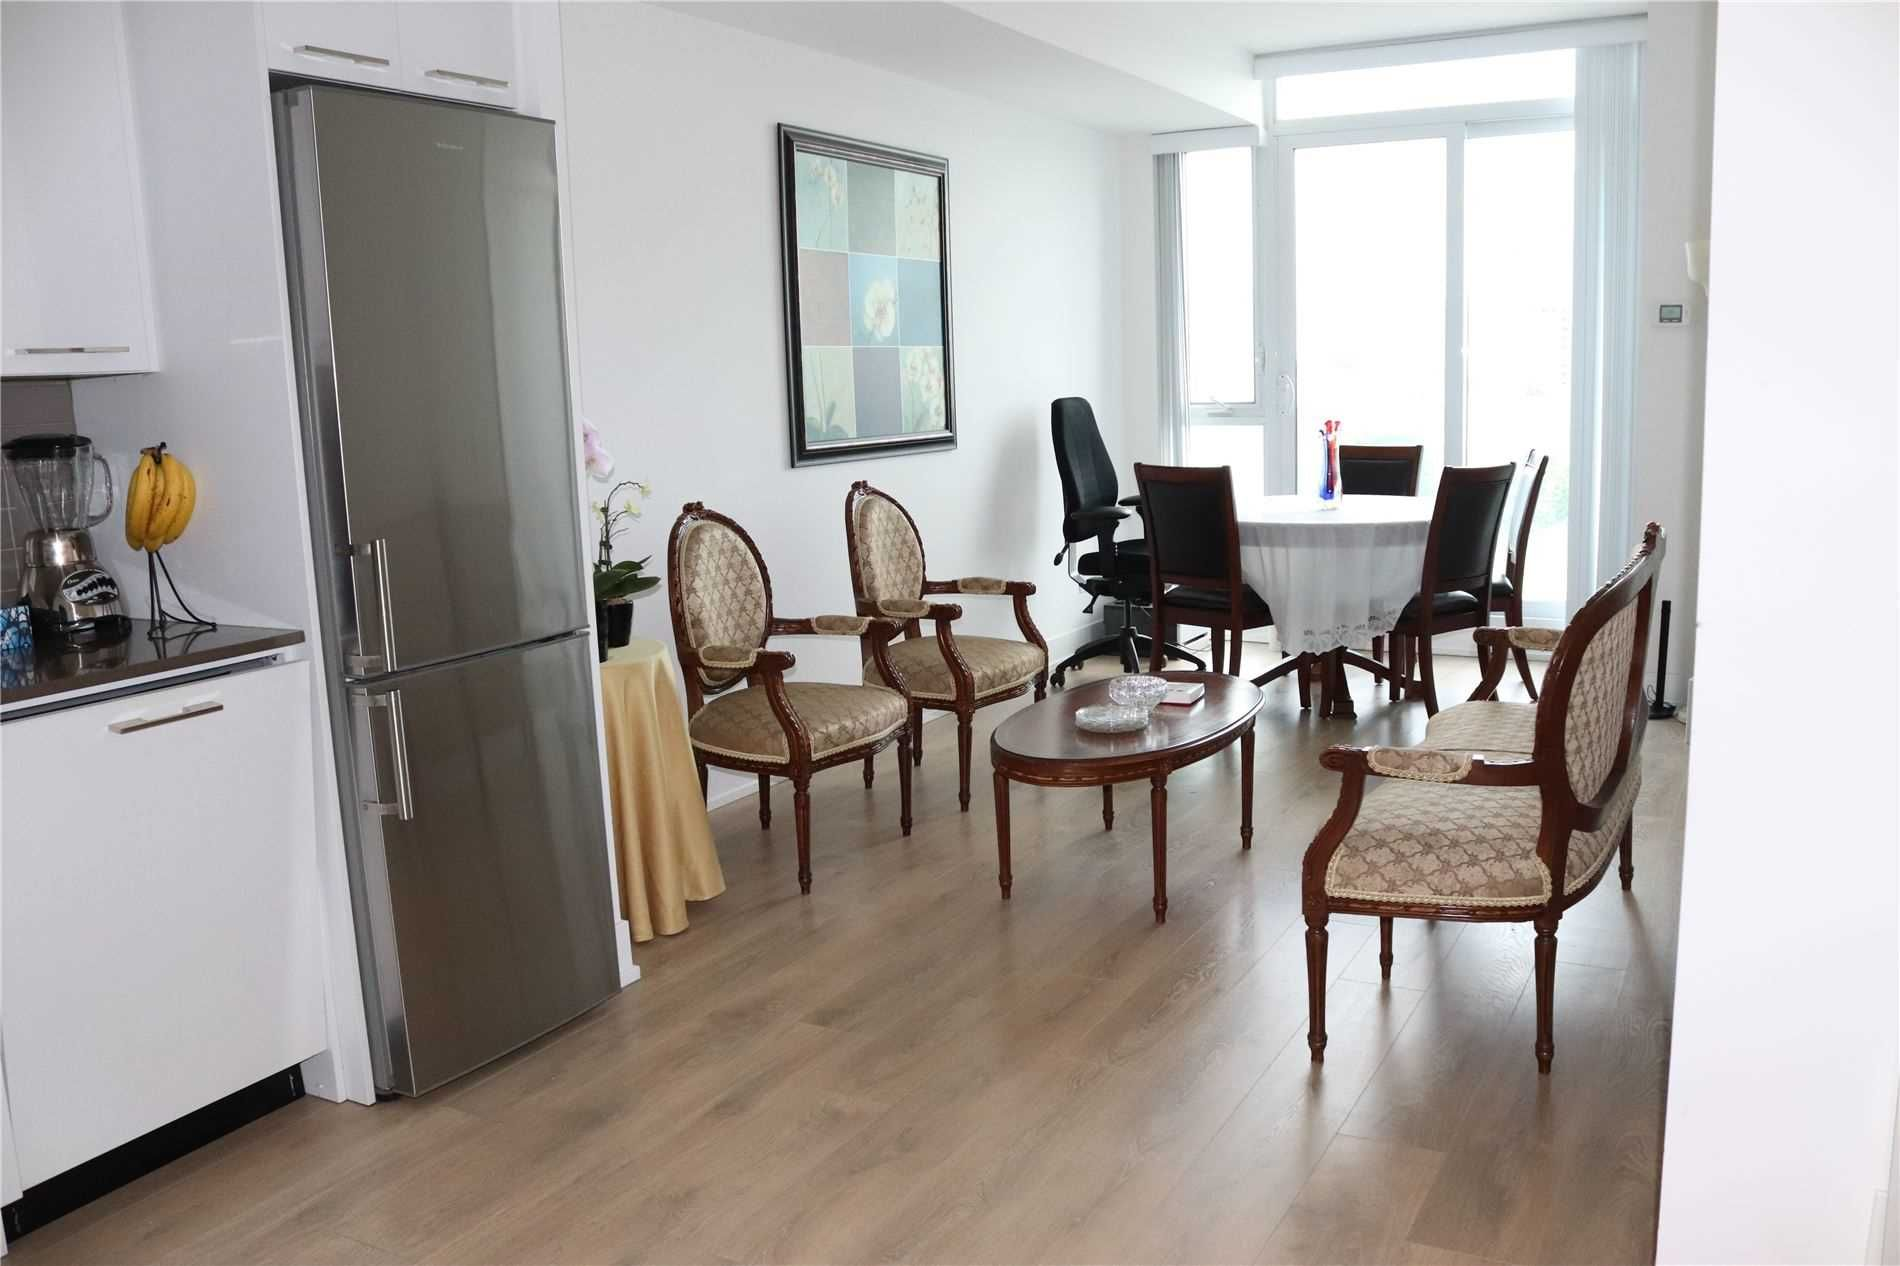 9471 Yonge St S, unit 548 for rent in Toronto - image #2